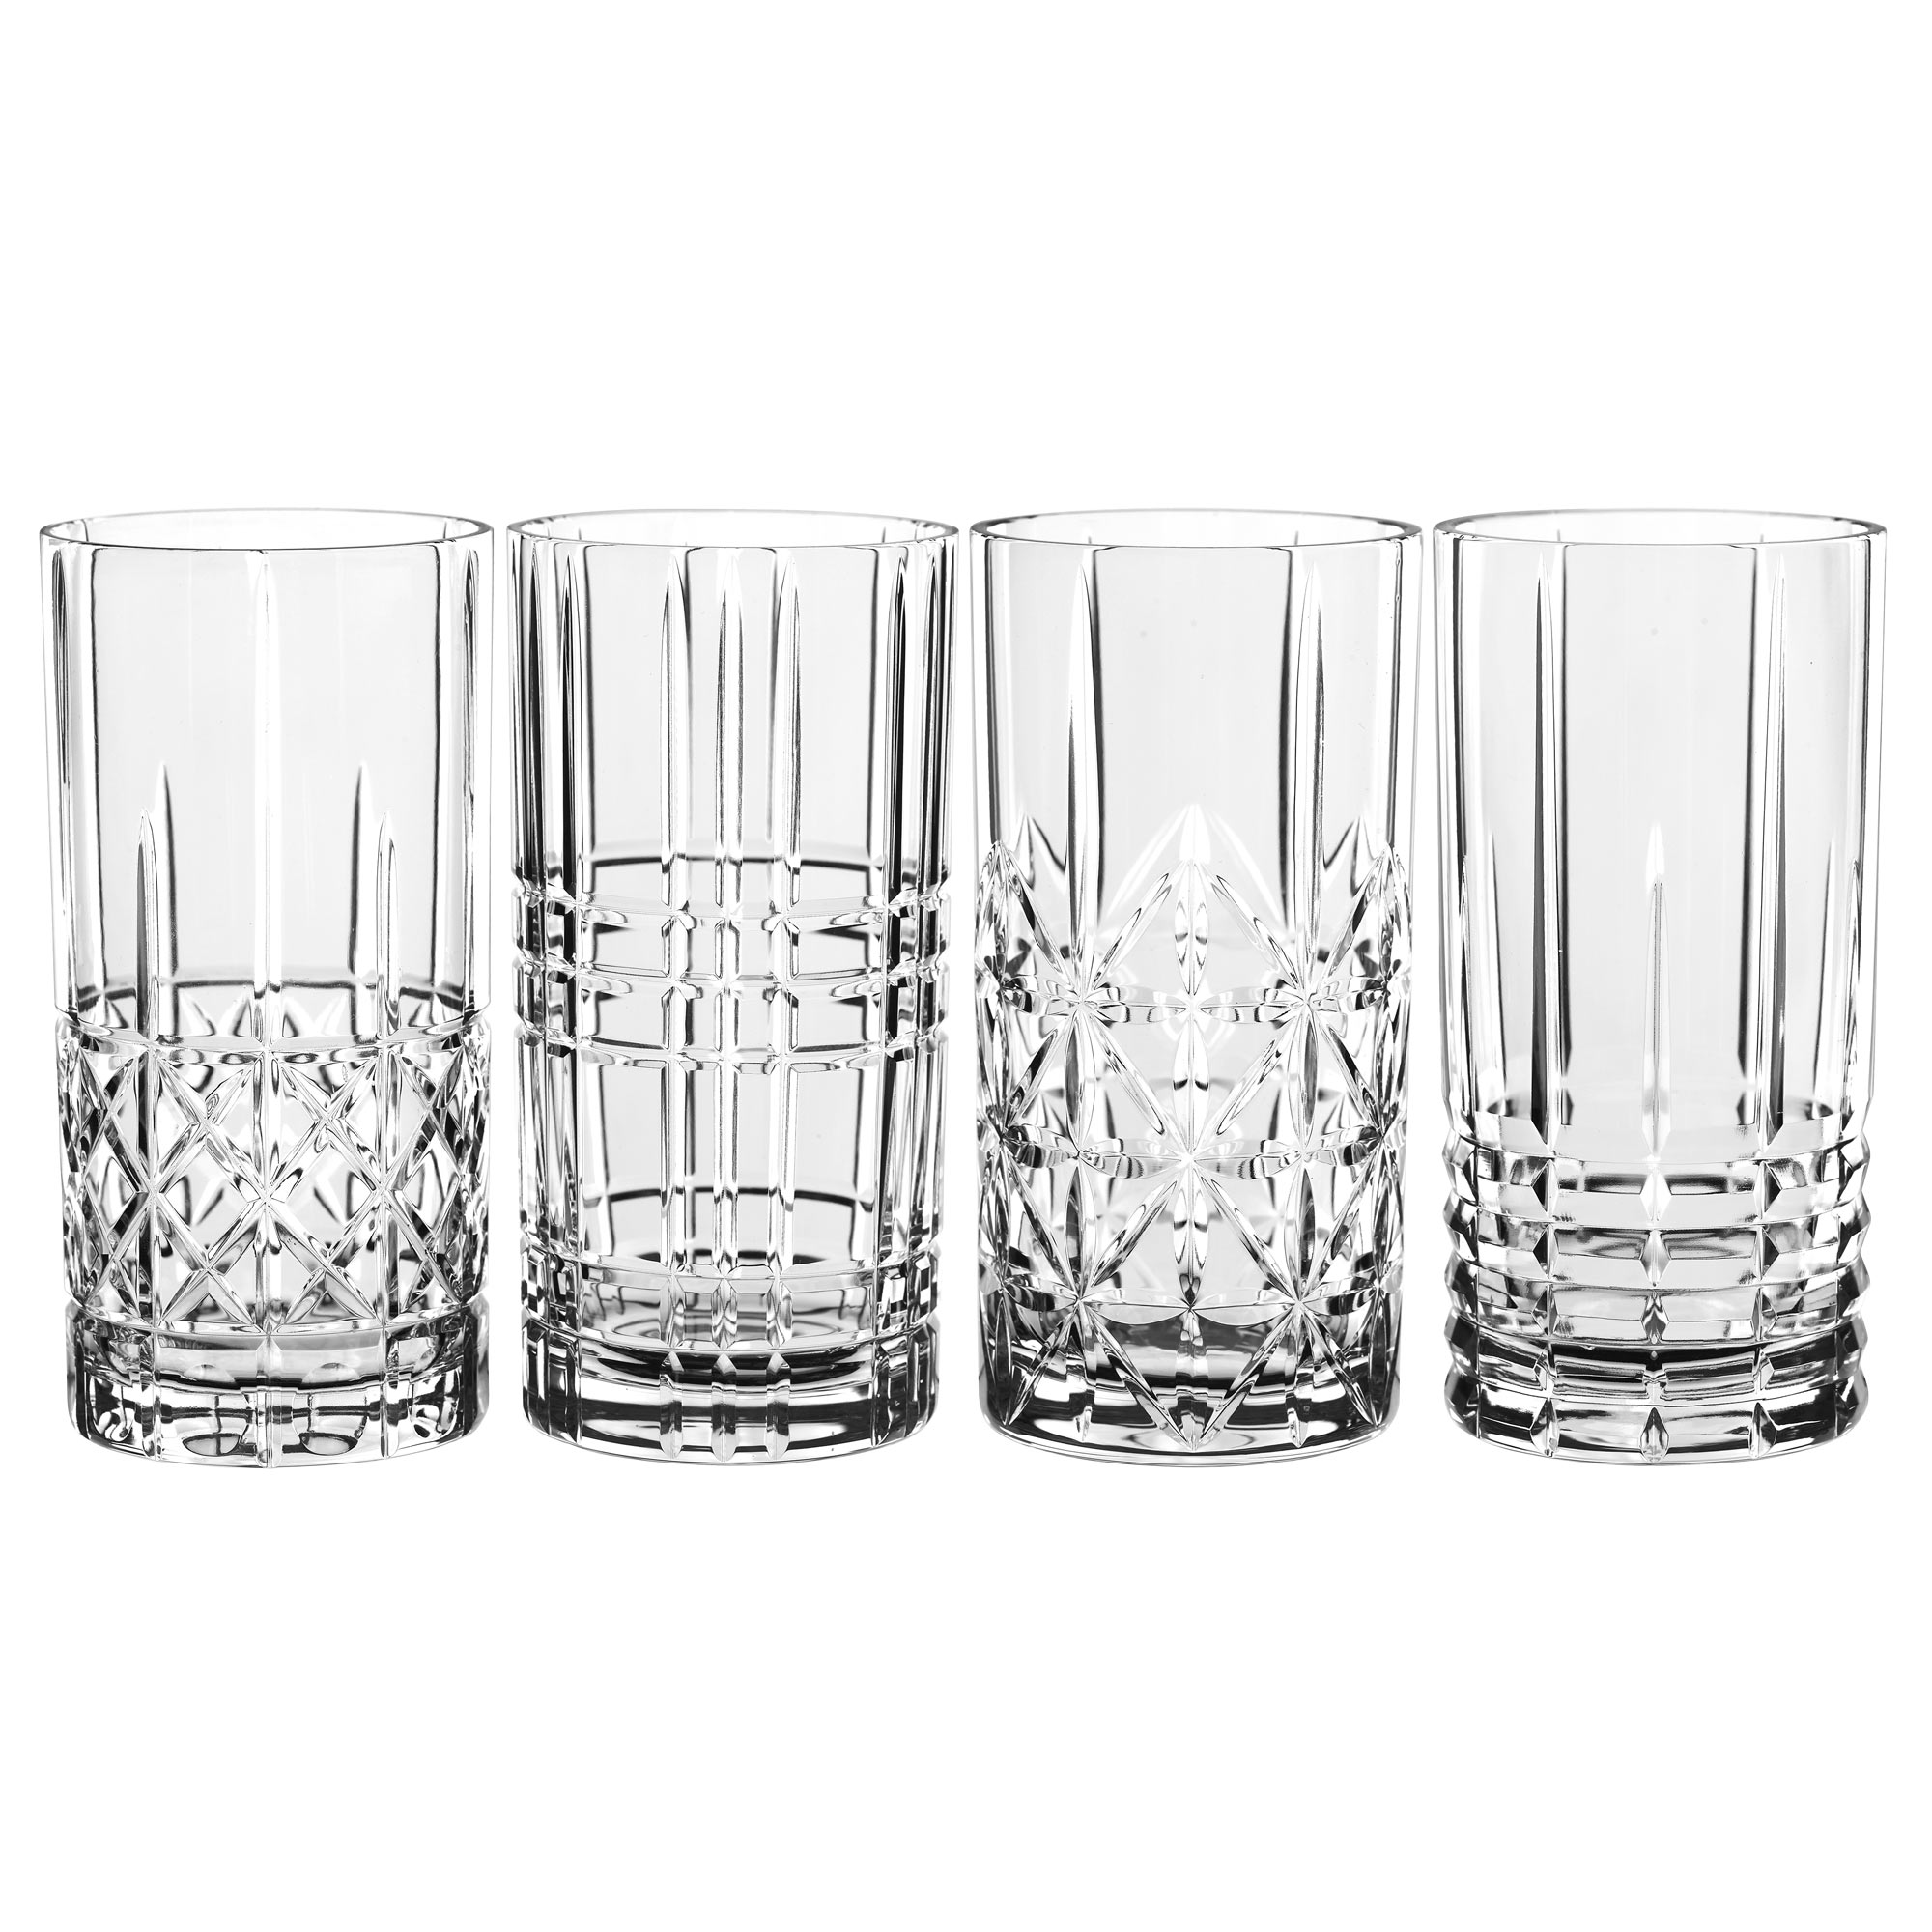 Longdrink set of 4 Highland